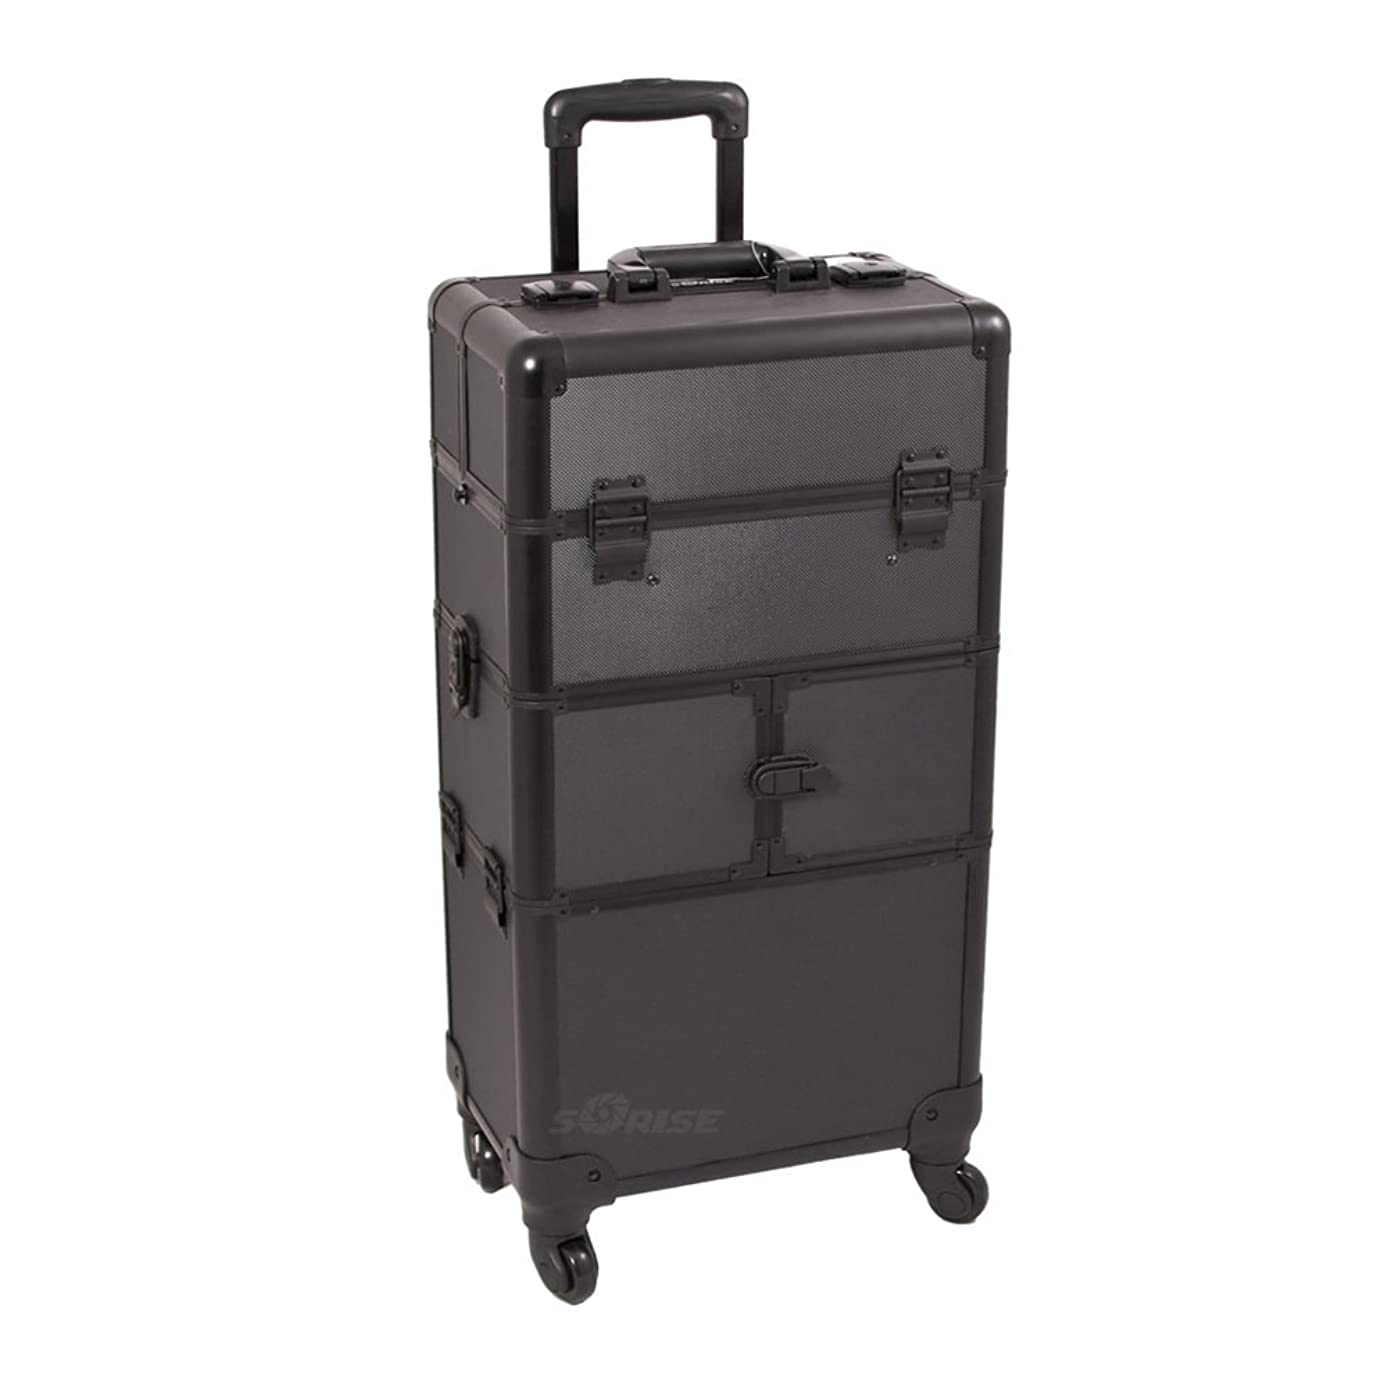 Craft Accents I3264 Dot Trolley Craft/Quilting Storage Case, Black